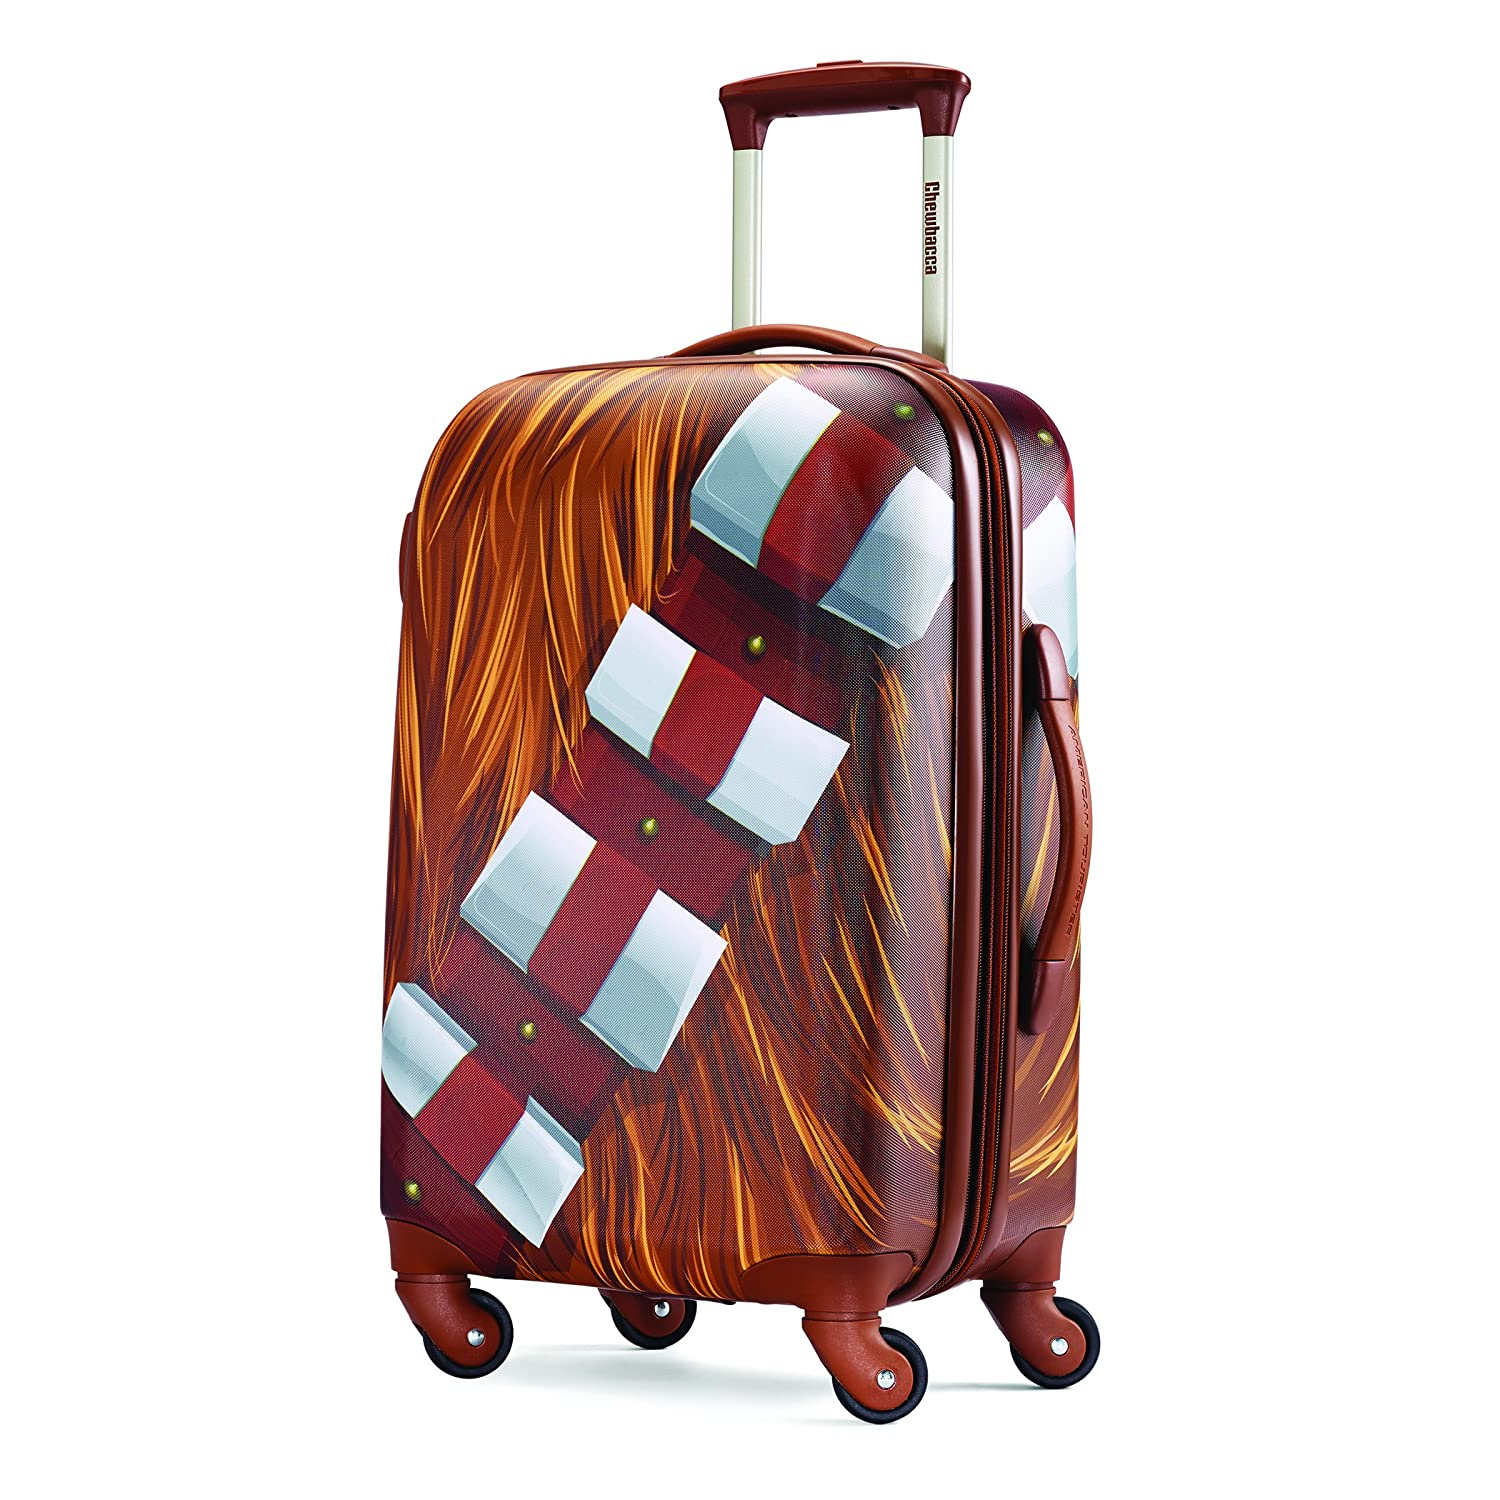 American Tourister Disney Star Wars All Ages 21-Inch Spinner Carry-On Expandable, Chewbacca, International Carry-On Samsonite Corporation - CA 75758-5323